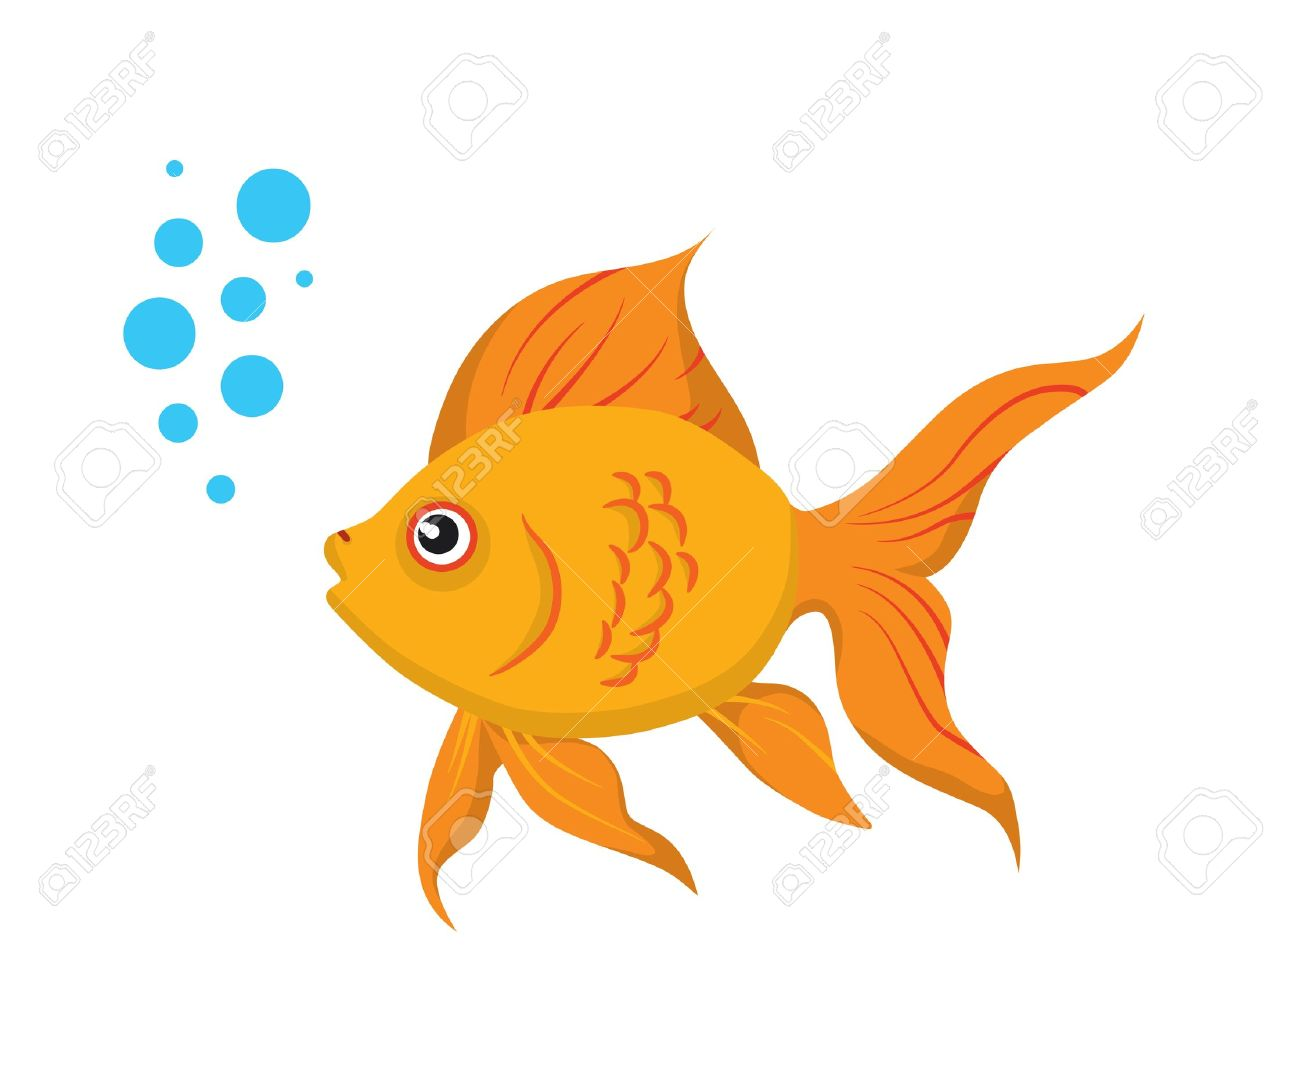 Fancy goldfish clipart image freeuse download Goldfish Clip Art & Goldfish Clip Art Clip Art Images - ClipartALL.com image freeuse download